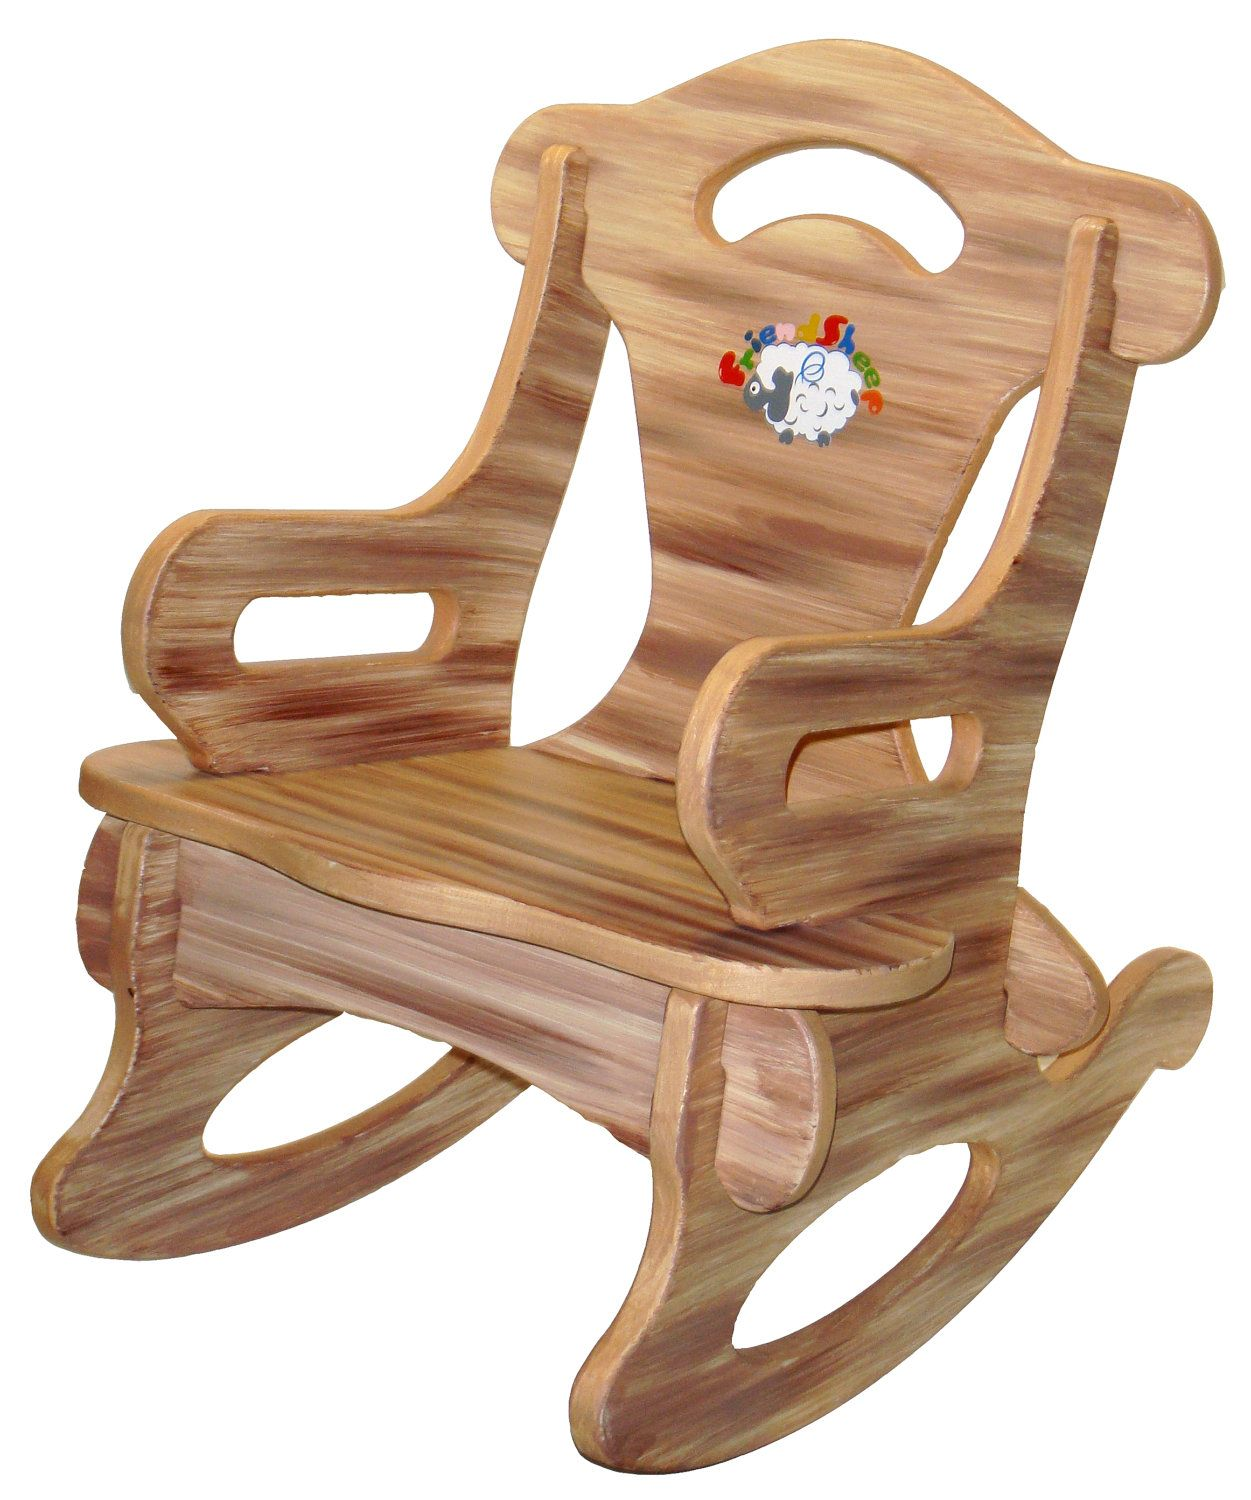 Toddler Wooden Rocking Chair Brown Puzzle Rocker Rocking Chair Solid Wood For By